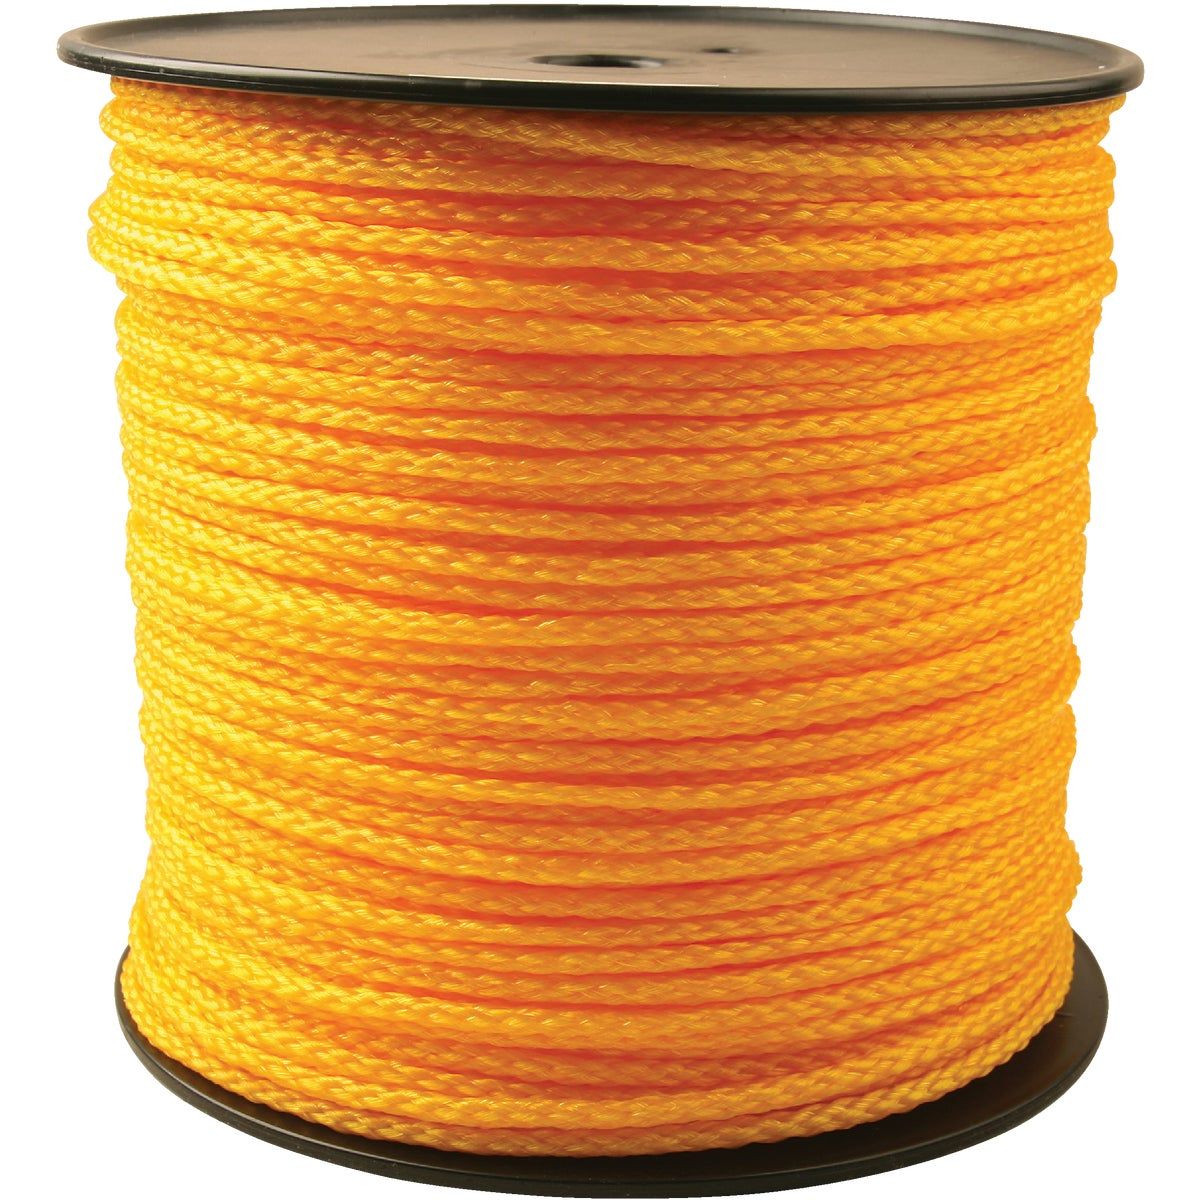 1/4X1000'POLY BRAID ROPE - 707113 by Do it Best